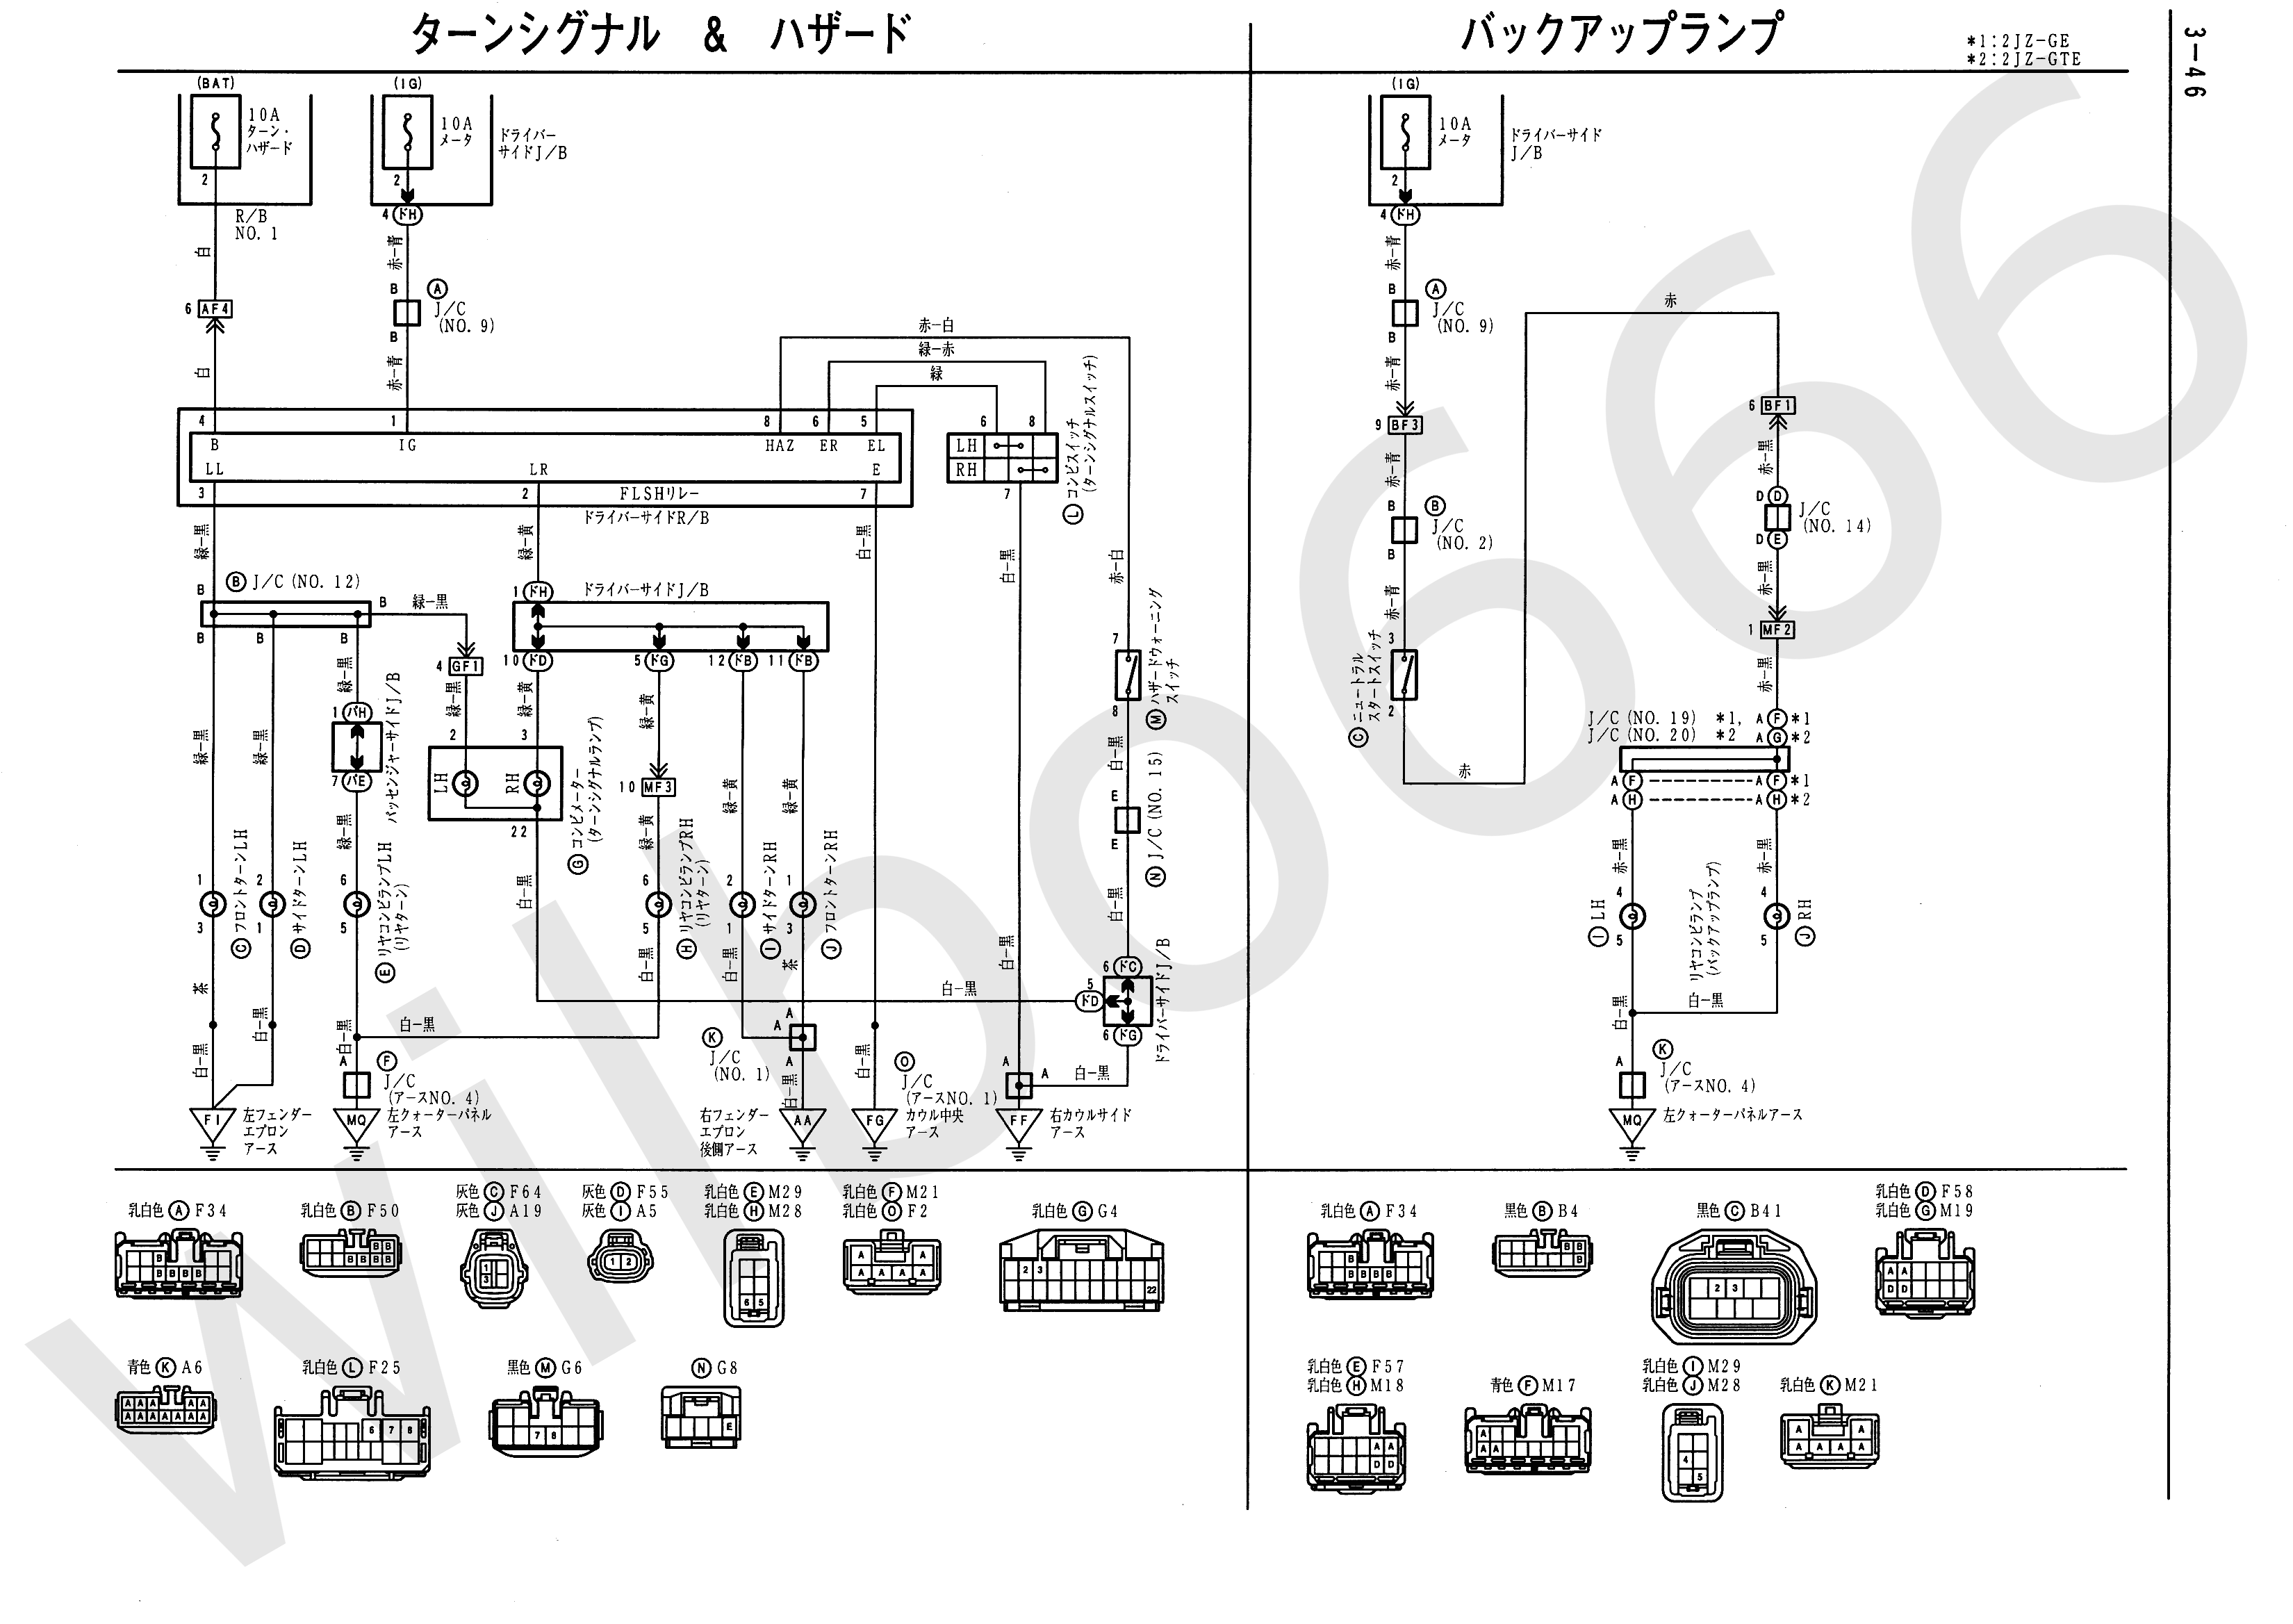 JZS161 Electrical Wiring Diagram 6748505 3 46?resize\\\\\=665%2C471 4age ecu wiring diagram 3sgte wiring diagram, corolla wiring toyota 4age wiring diagram at eliteediting.co